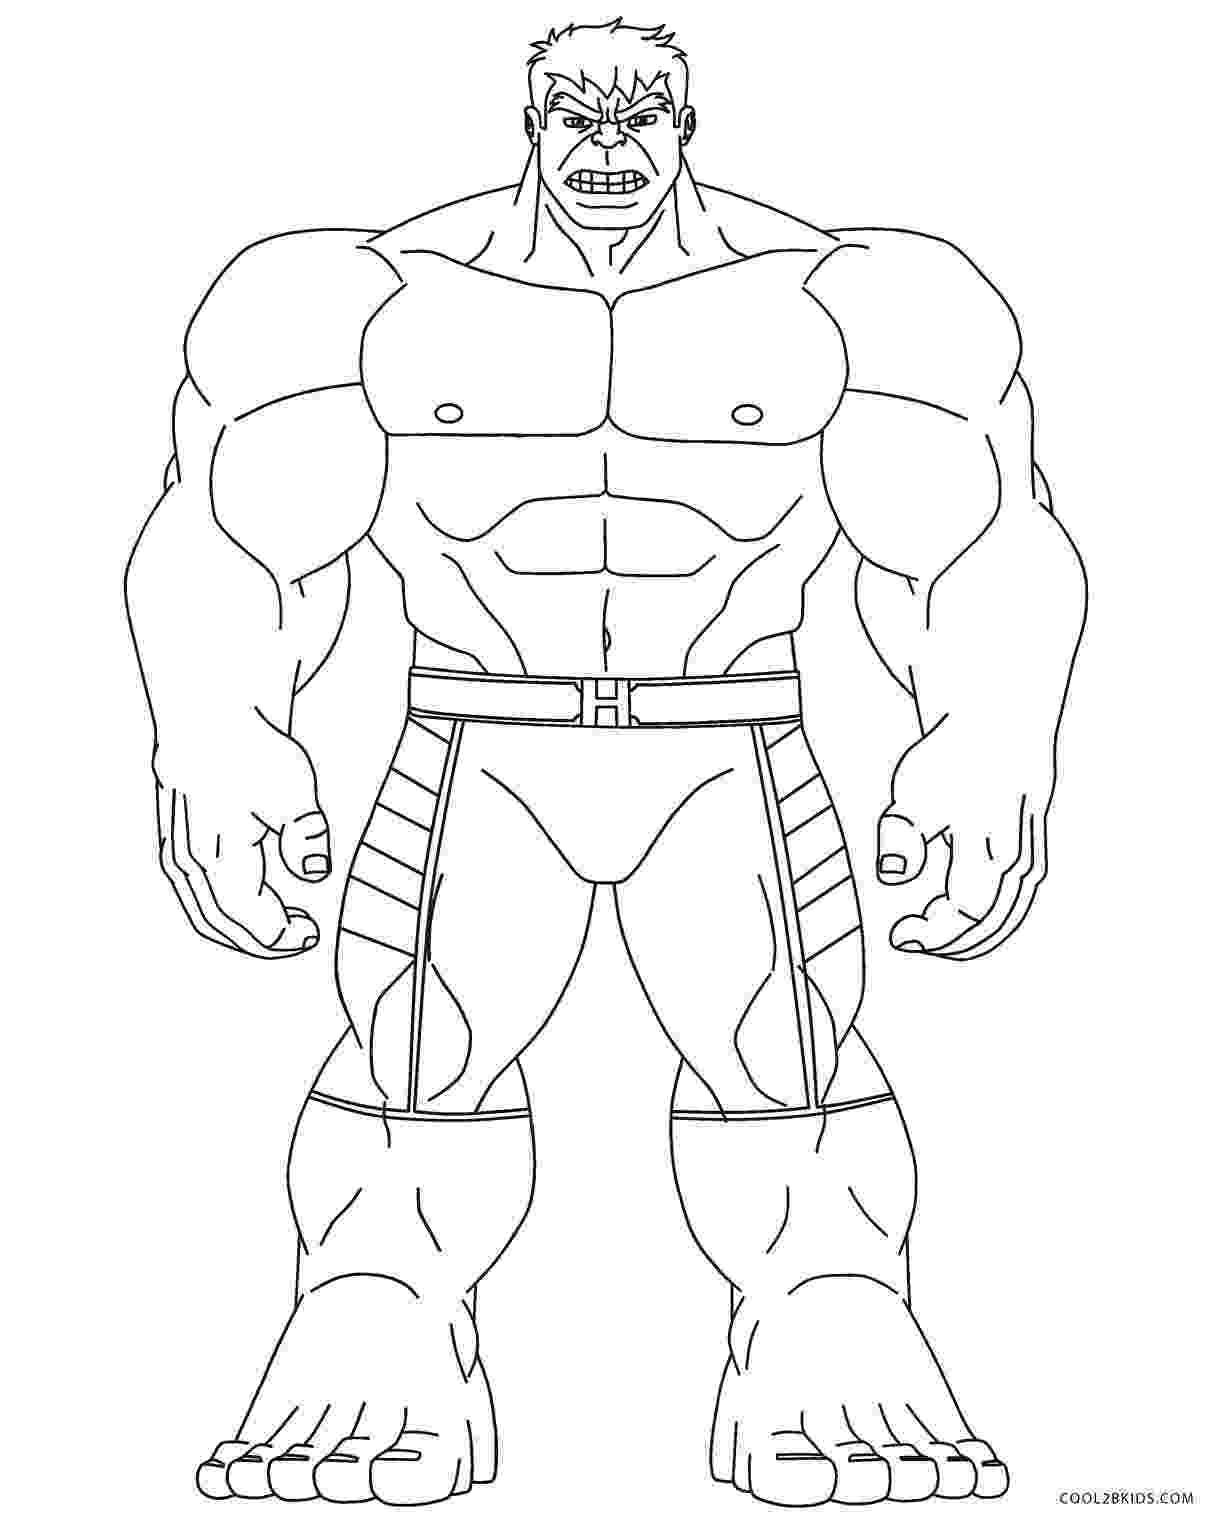 picture of hulk hulk coloring page free printable coloring pages of picture hulk